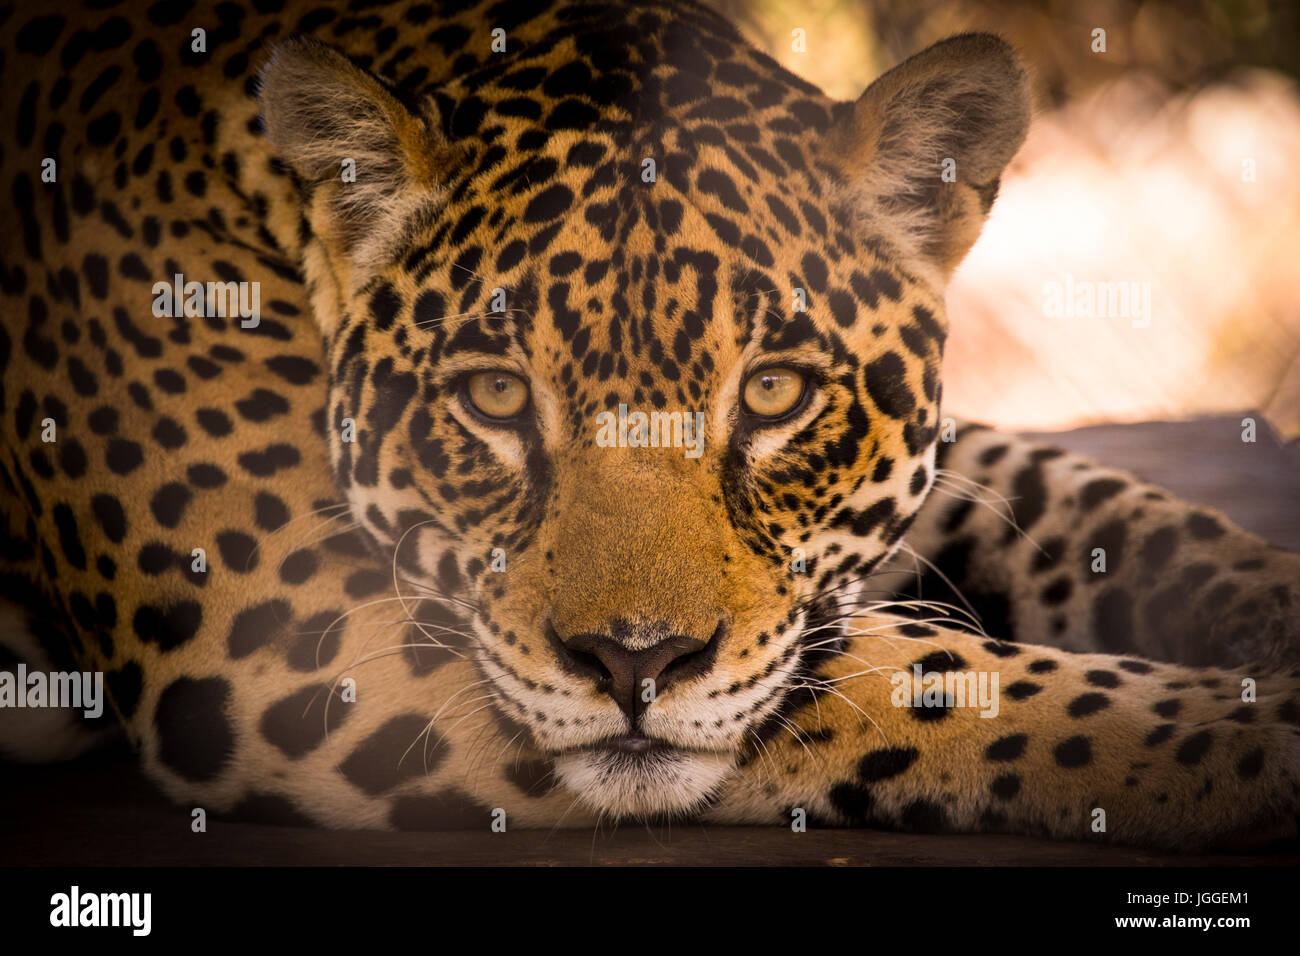 Gros chat sauvage jaguar Panthera onca wildlife image prise au Panama Photo Stock